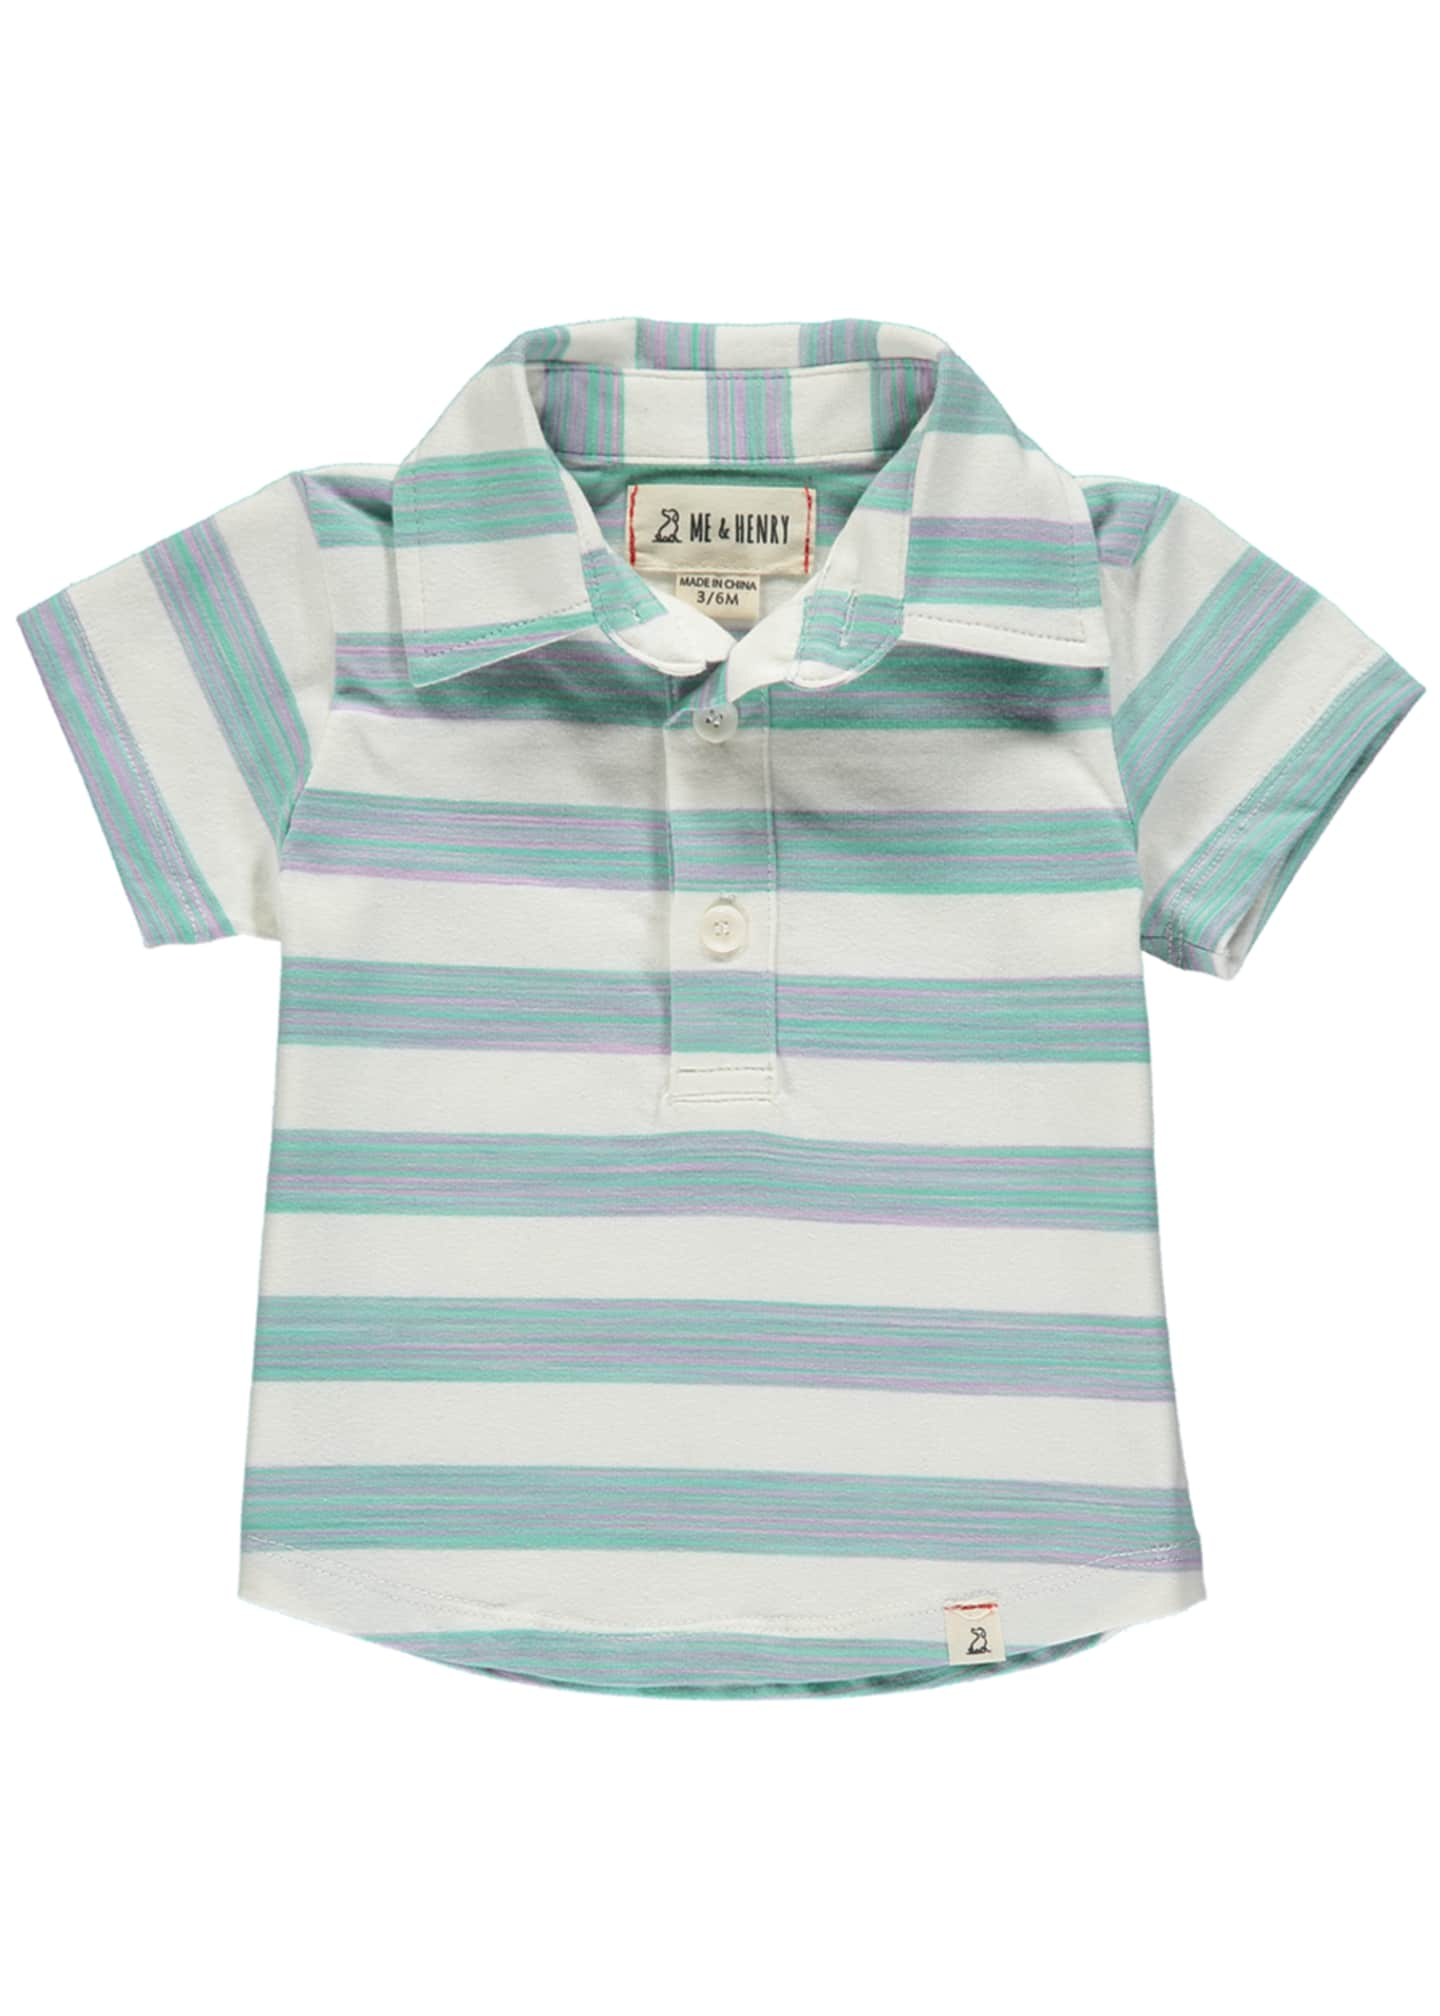 Image 1 of 1: Boy's Striped Cotton Polo Shirt w/ Children's Book, 6-24 Months